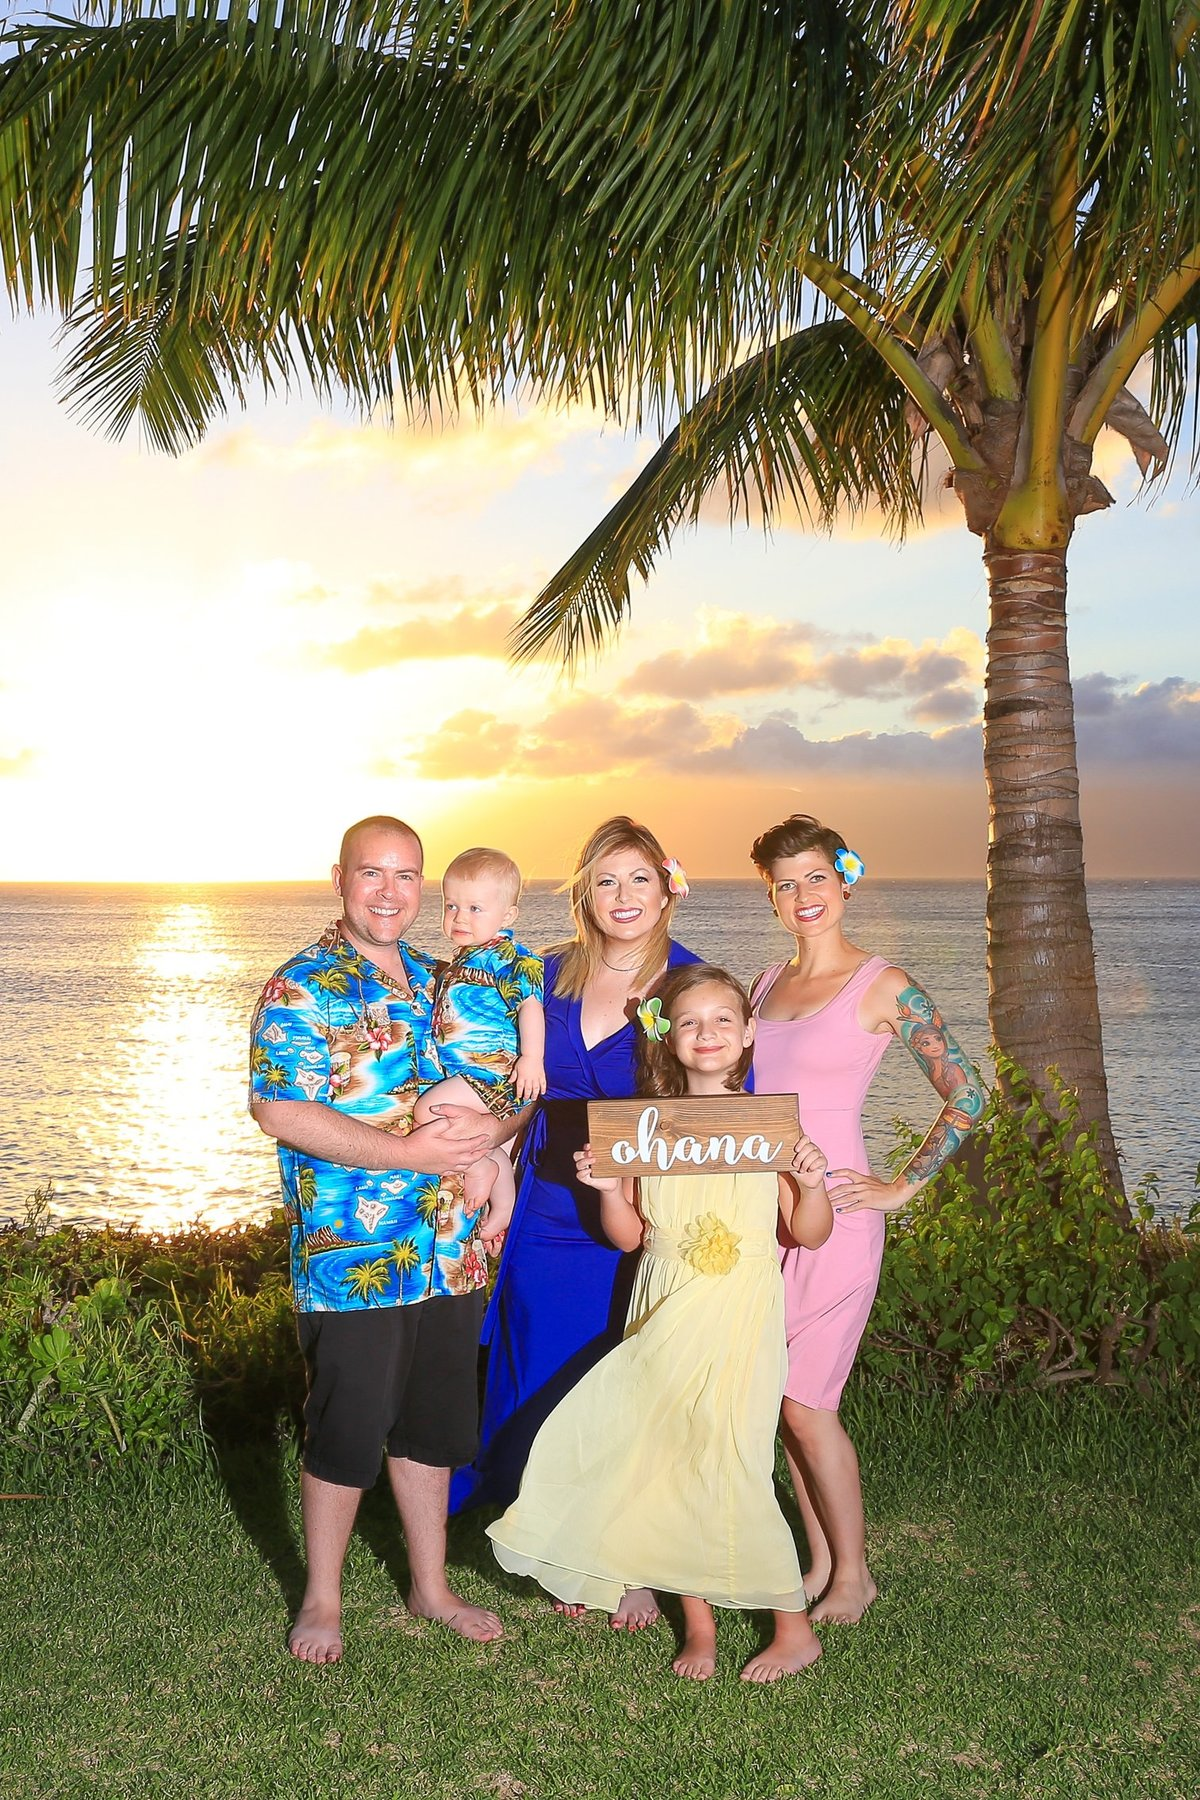 Capture Aloha Photography, Maui Family Portraits at beach in sunset